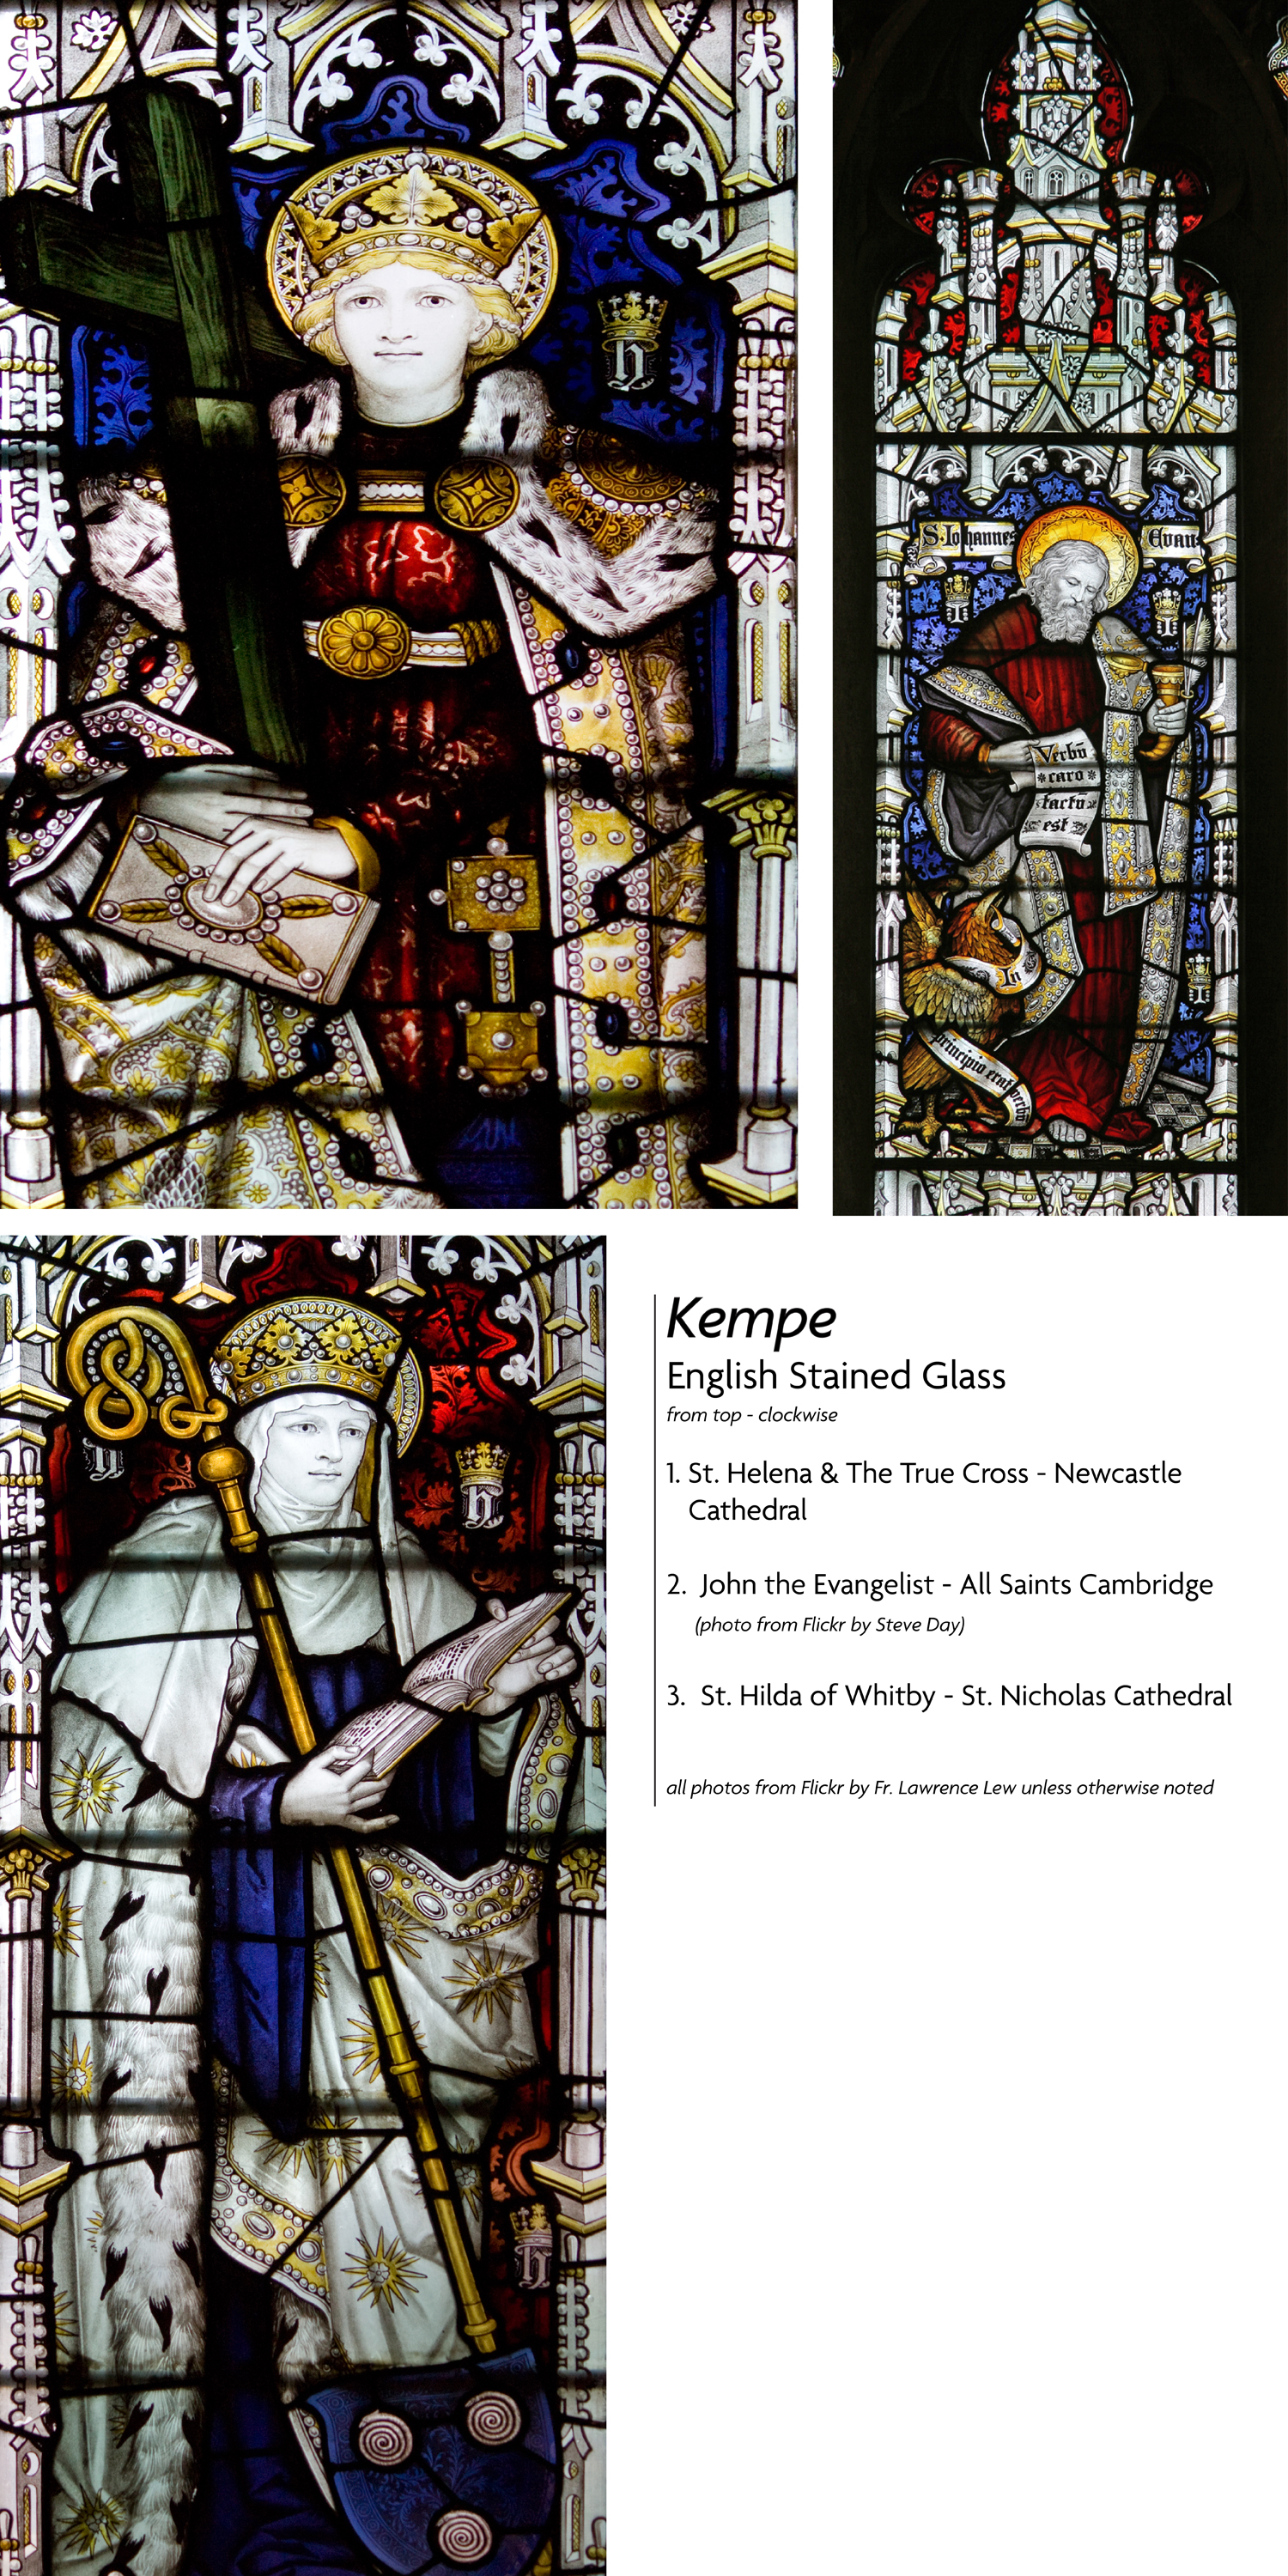 2013-05-03 Blog_Kempe Stained Glass-01.jpg